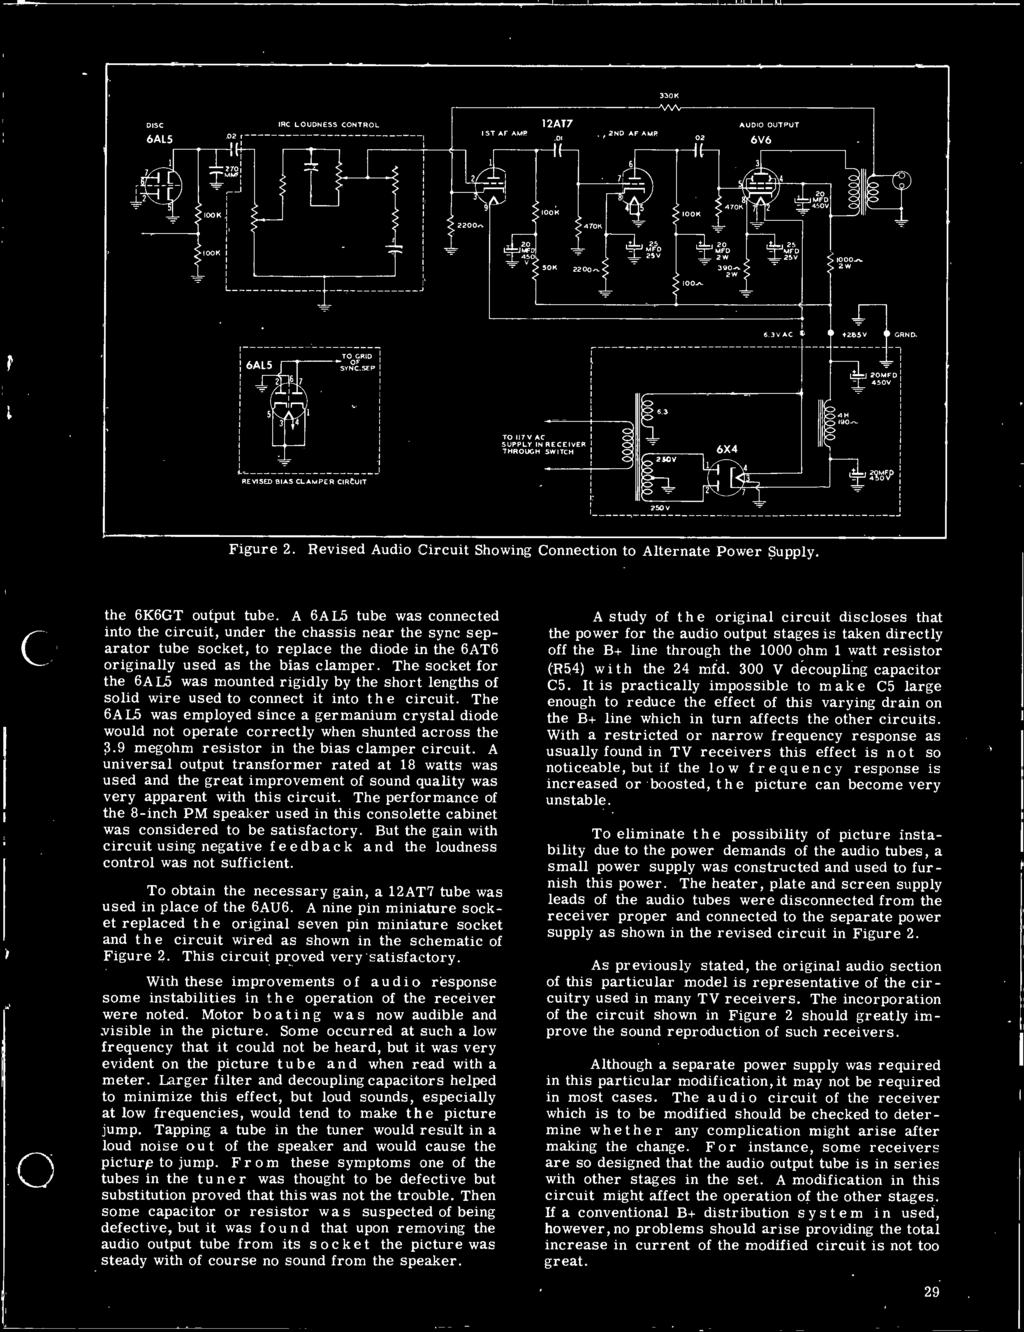 29 Covering Photofact Pdf Charging Circuit Diagram For The 1947 Studebaker All Models Revised Audio Showing Connection To Alternate Power Supply 6k6gt Output Tube